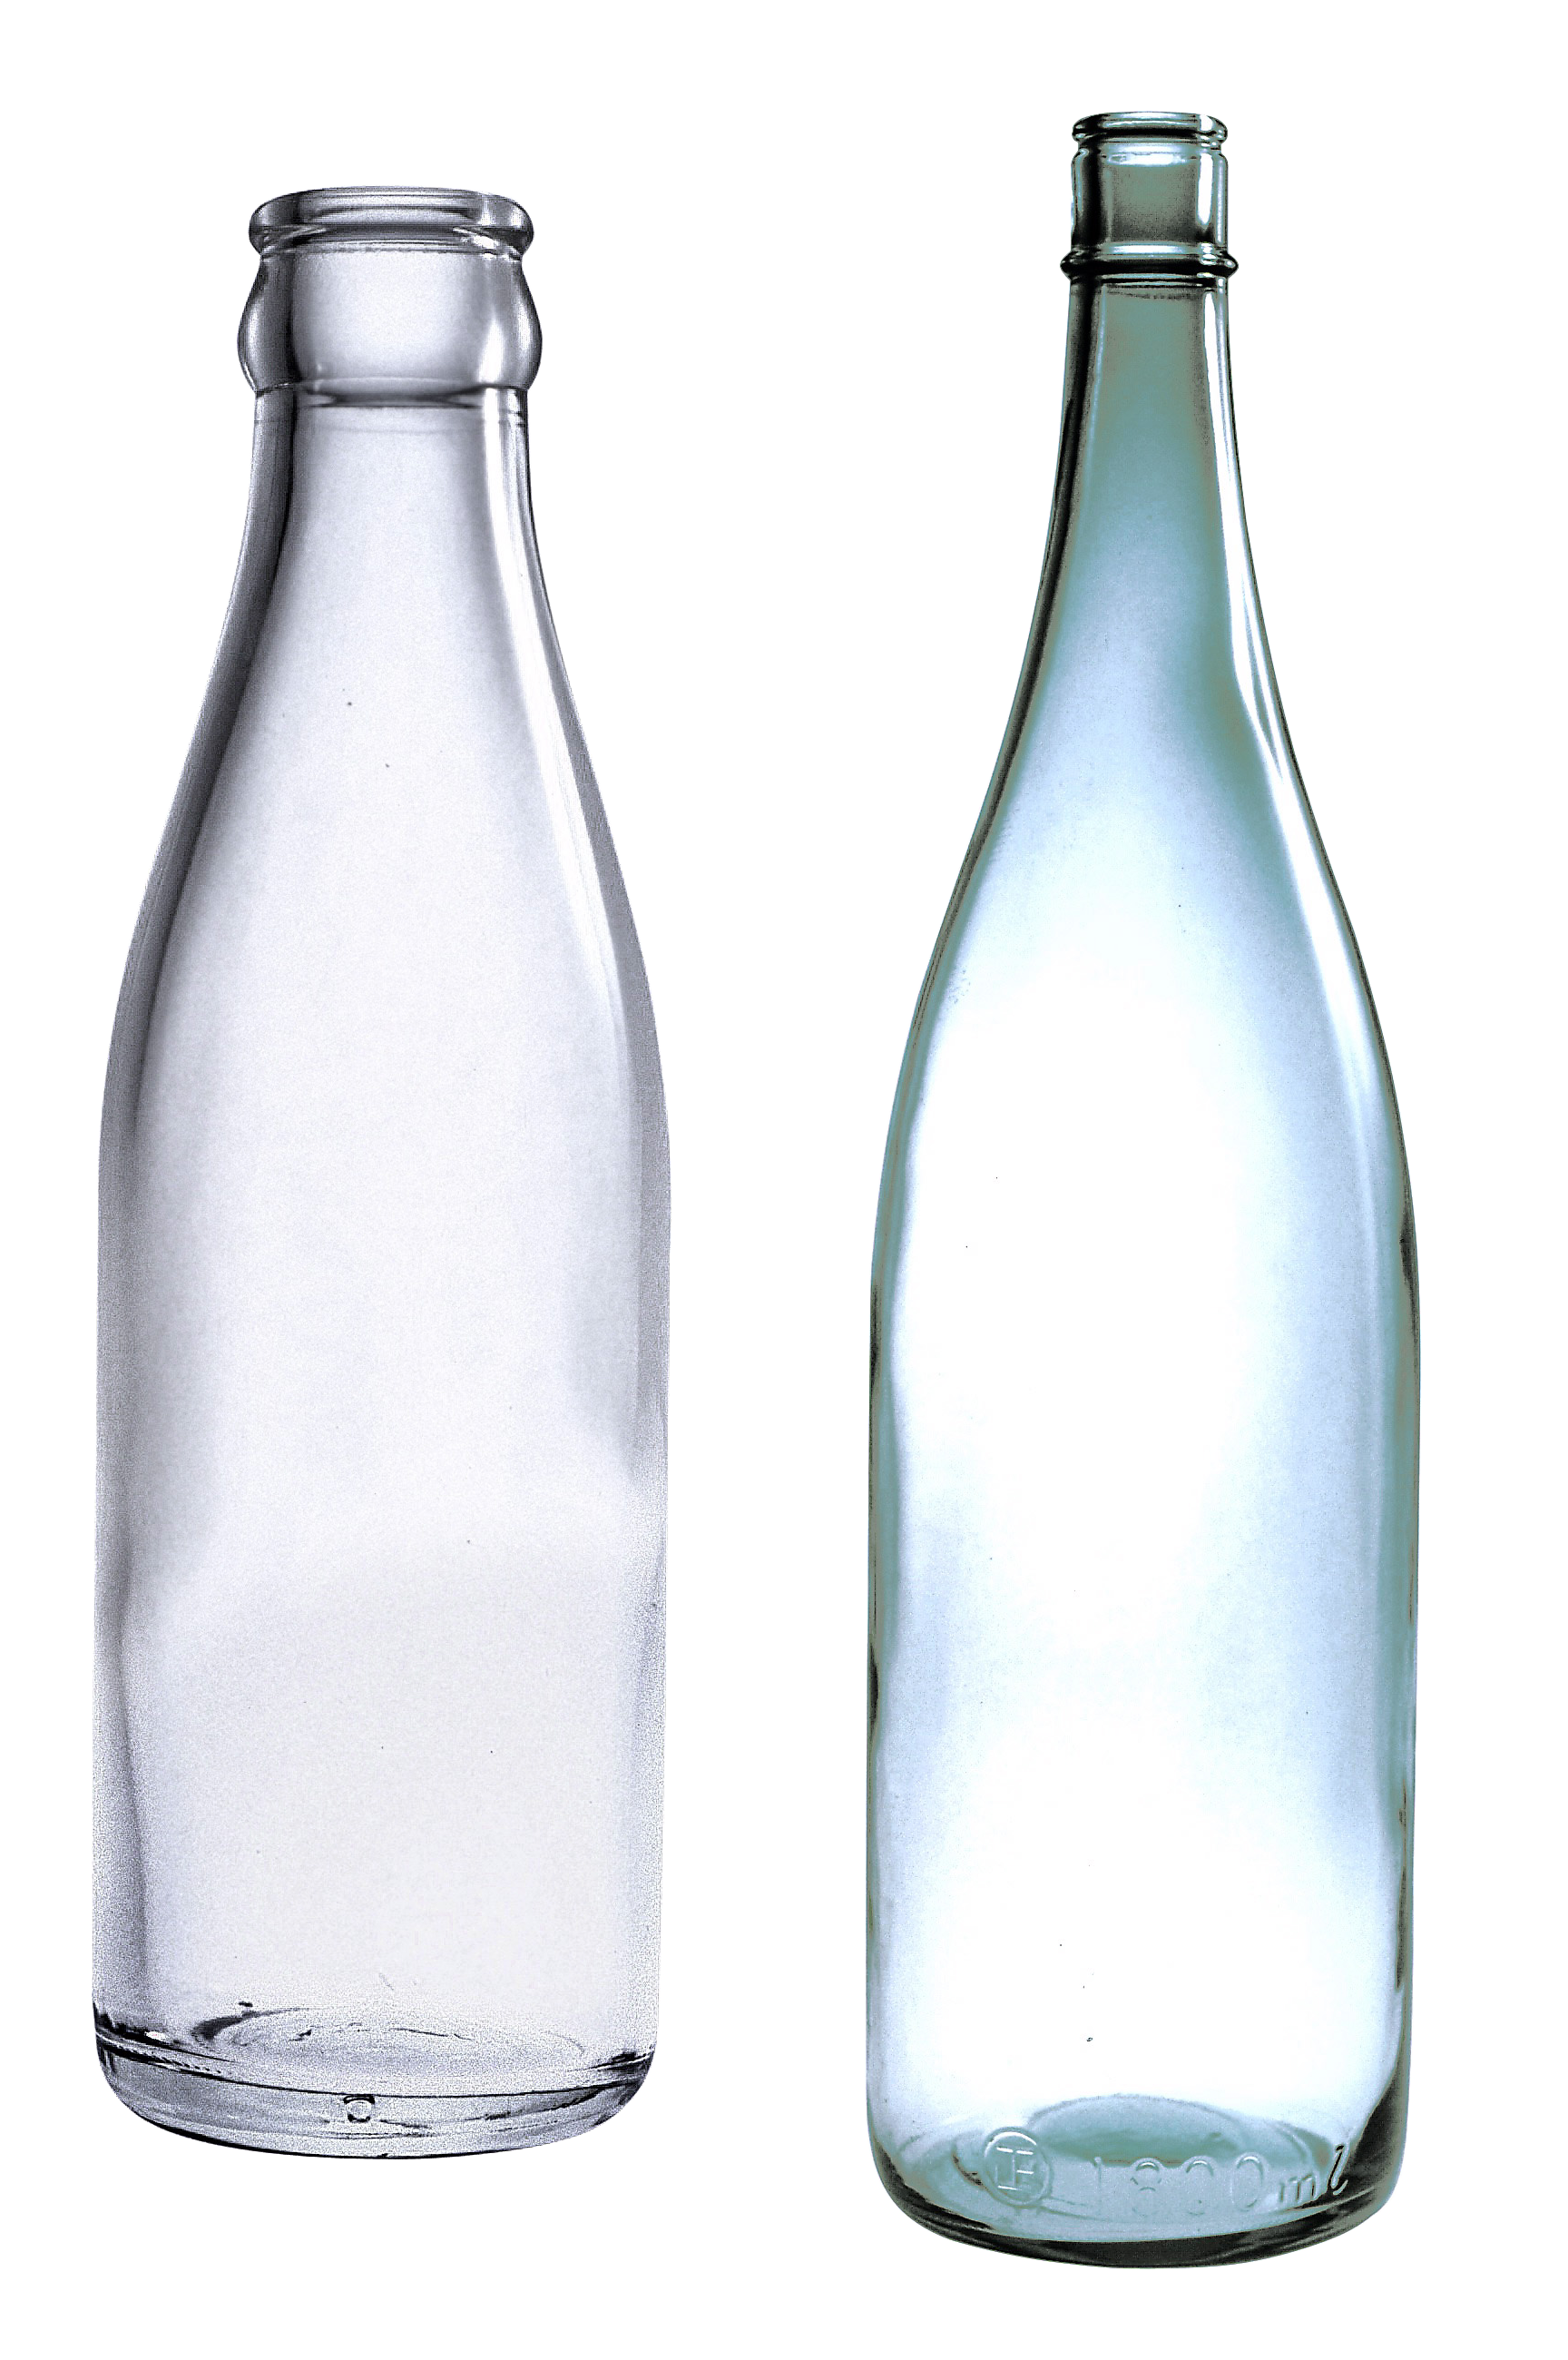 Bottles png image . Milk clipart empty glass